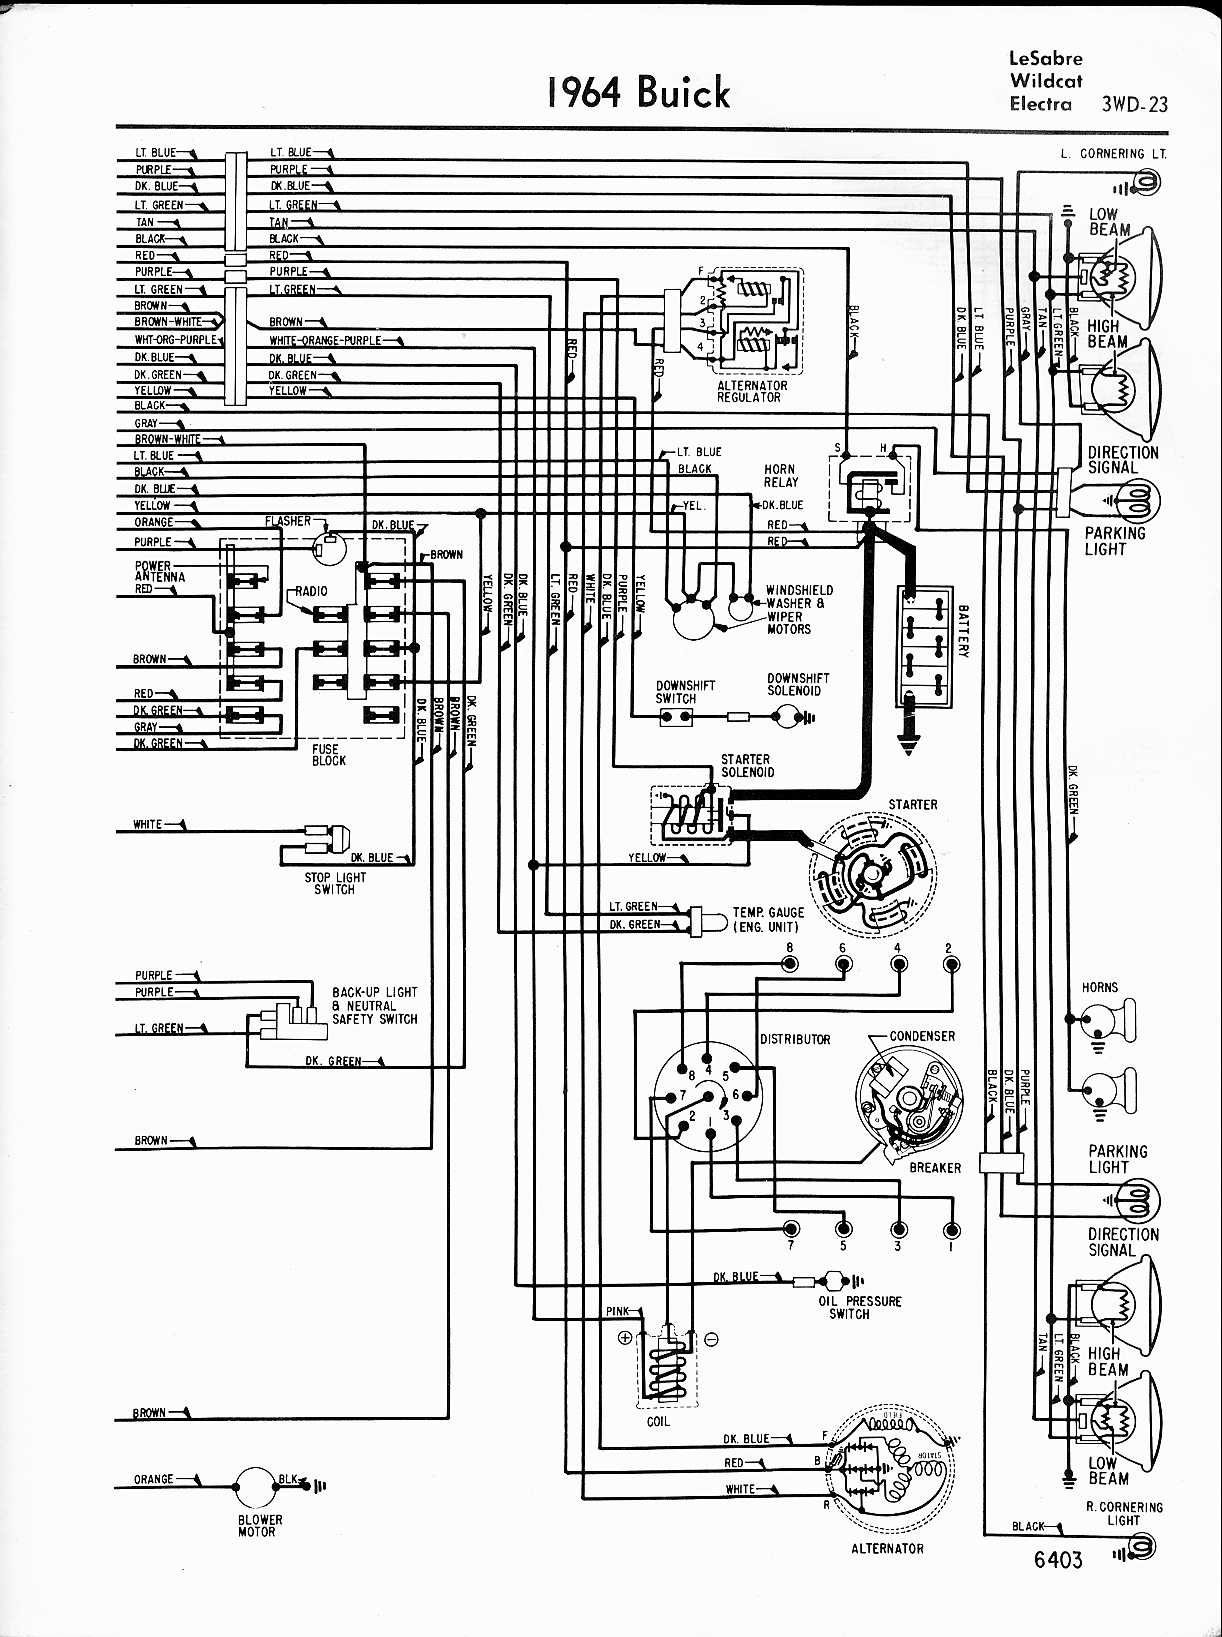 MWireBuic65_3WD 023 2001 buick regal wiring diagram 2001 mazda tribute wiring diagram 1997 infiniti q45 fuse box diagram at eliteediting.co